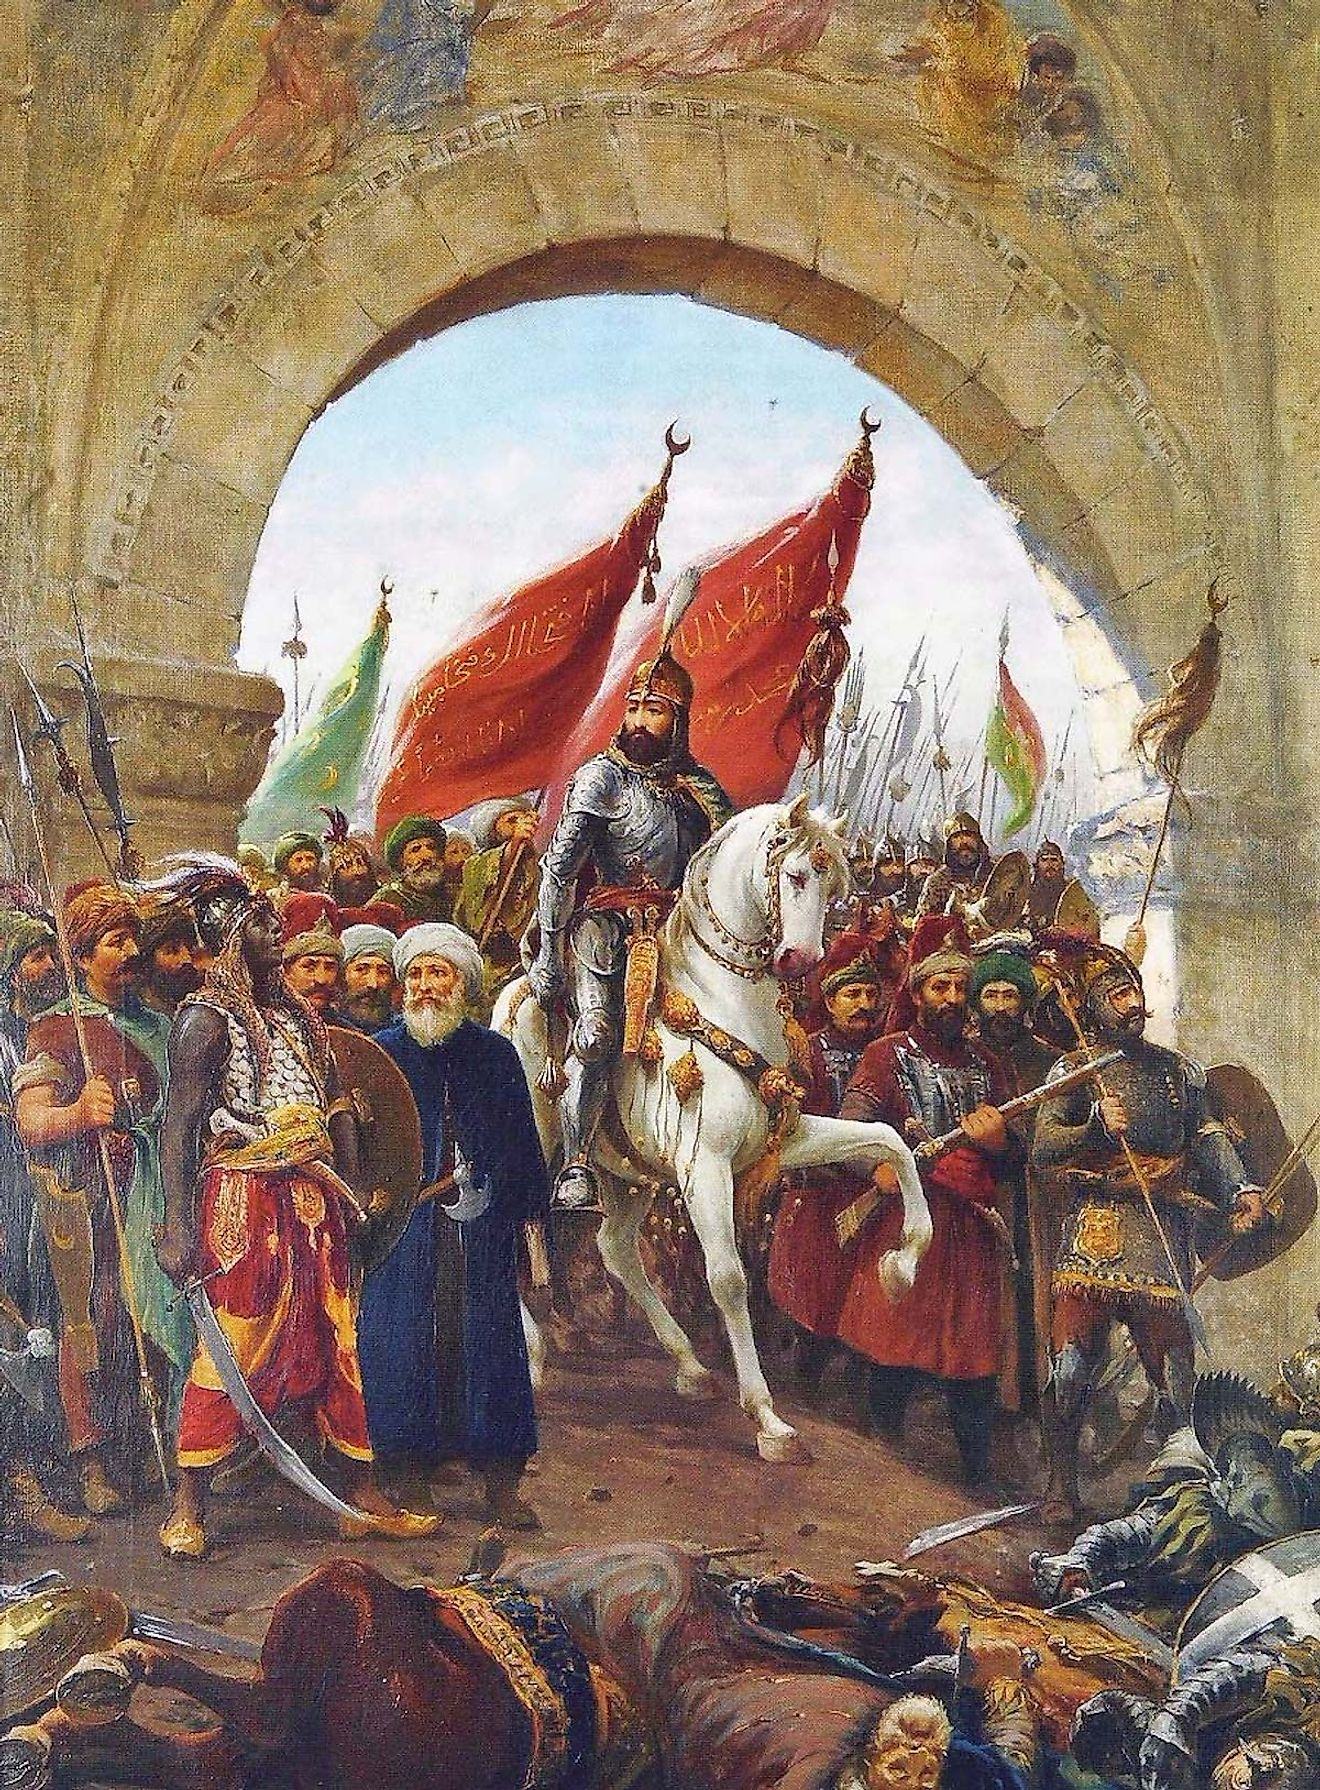 Conquest of Constantinople by Sultan Mehmed the Conqueror in 1453.